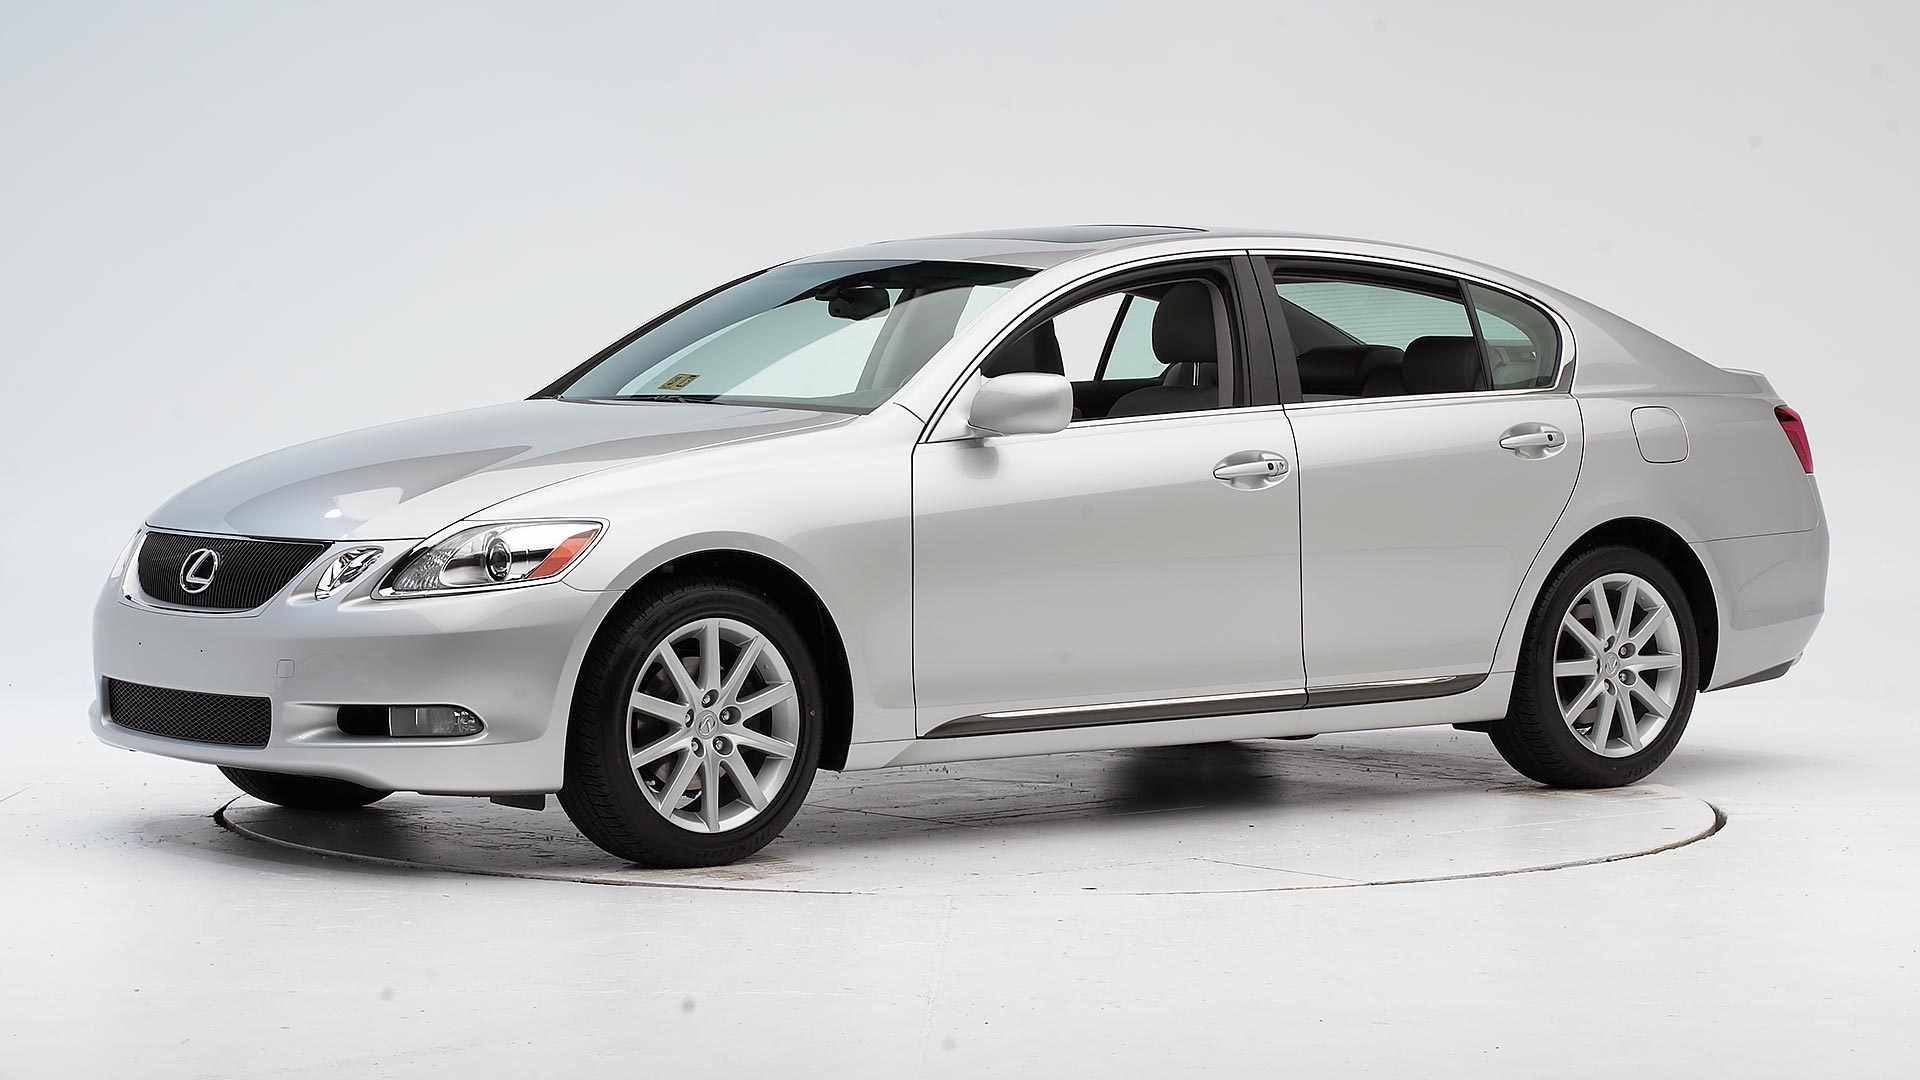 2007 Lexus GS 4-door sedan